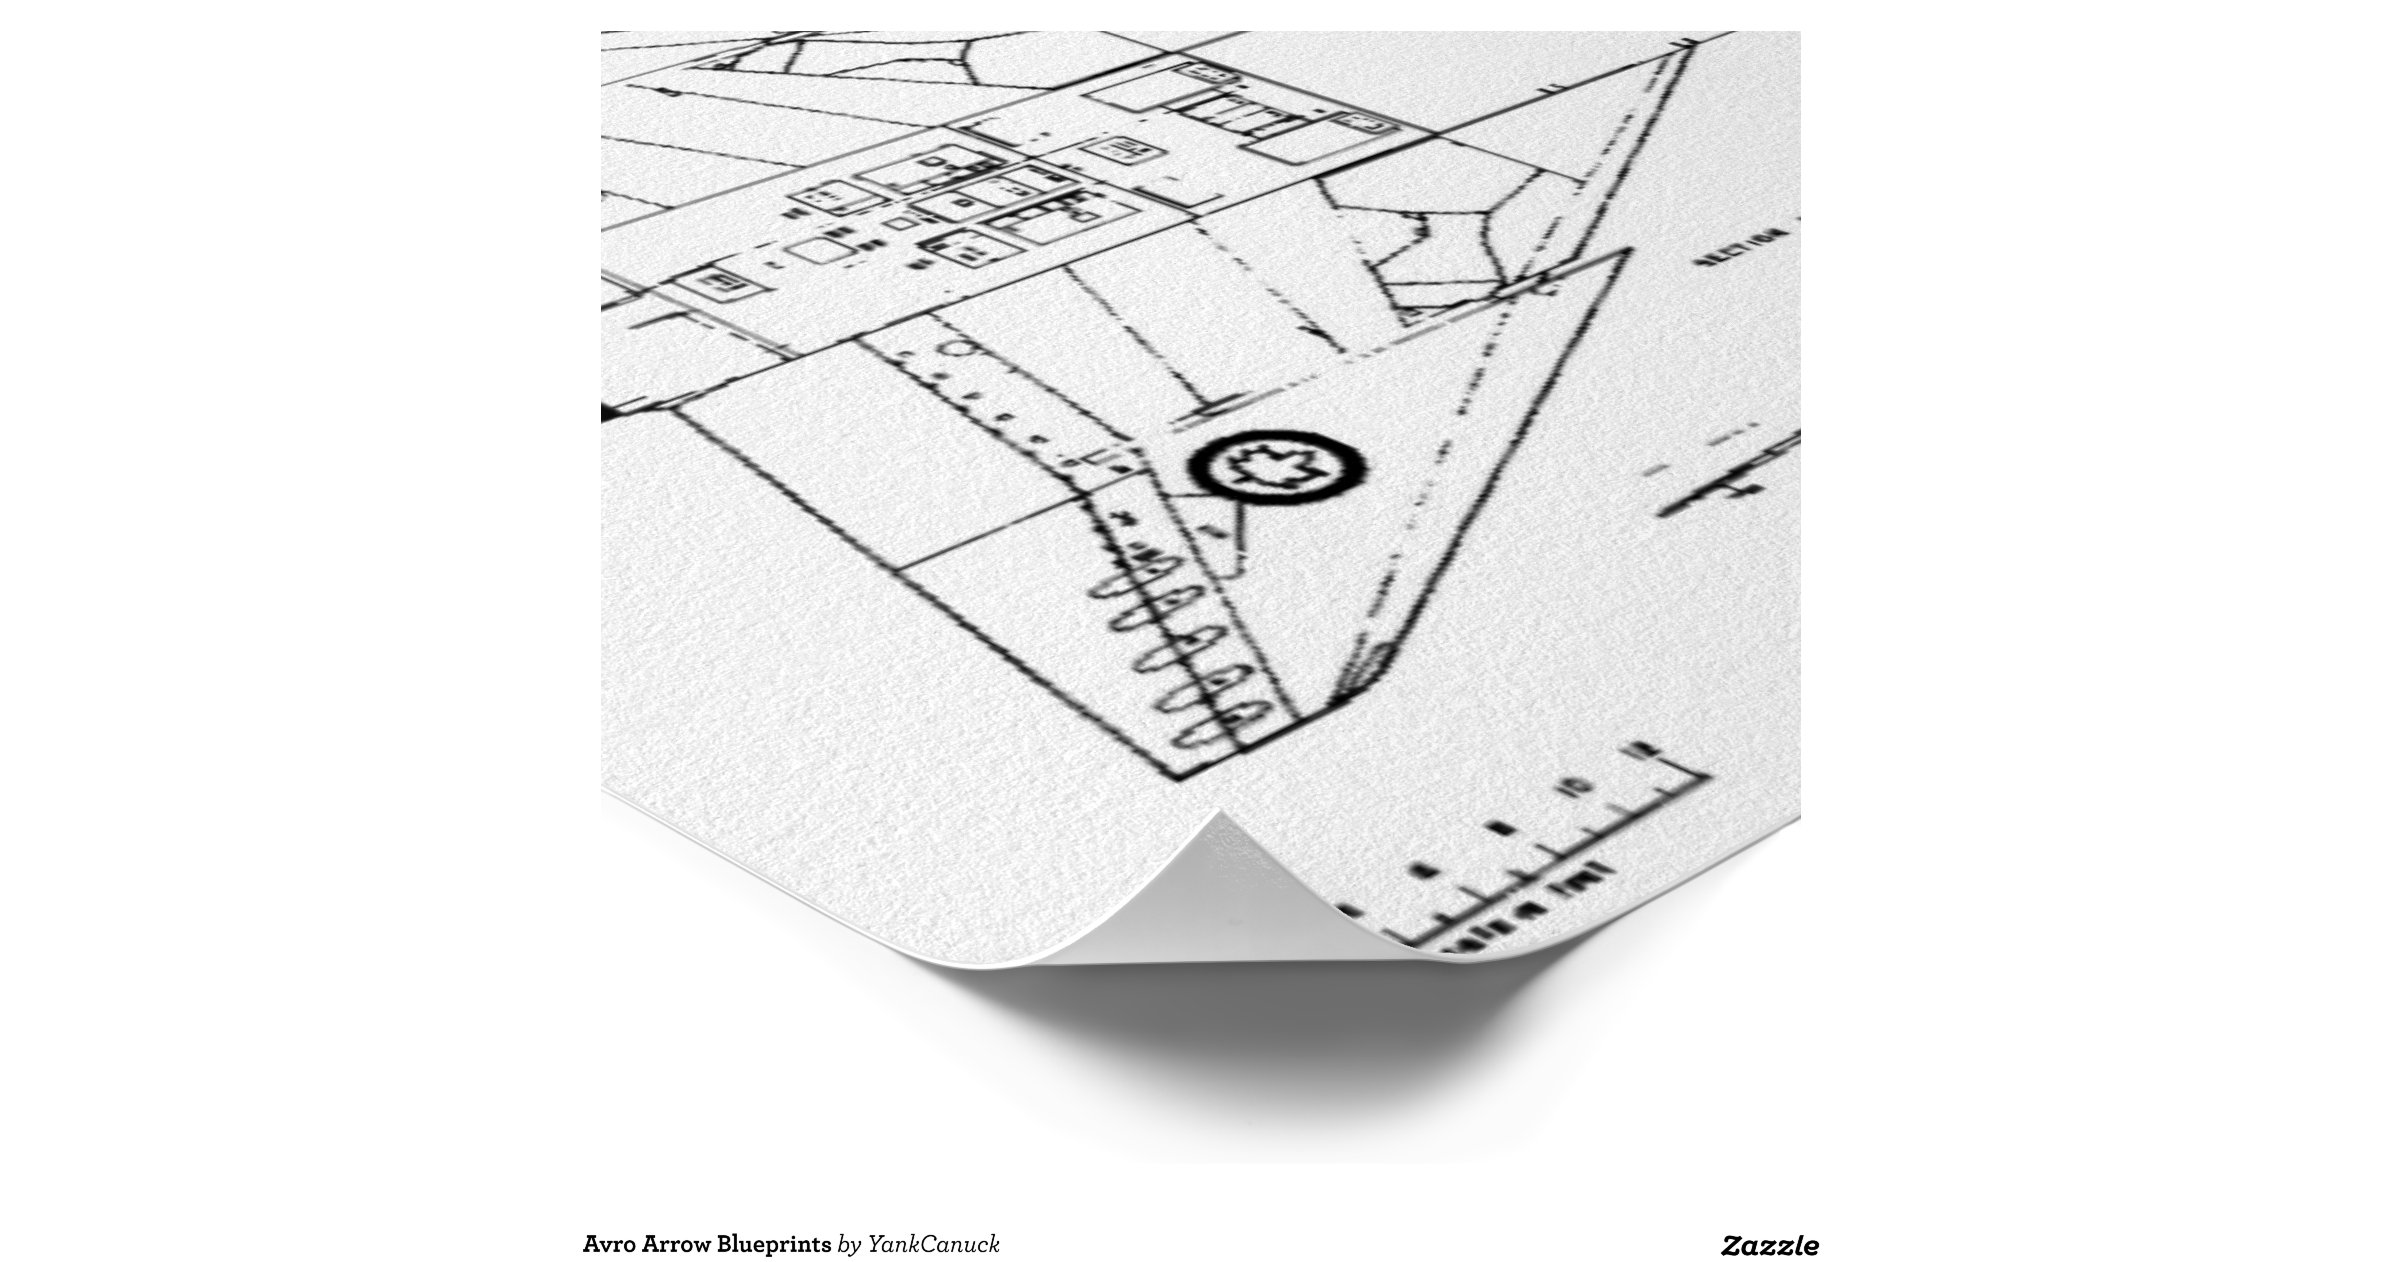 Avro Arrow Blueprints Poster | Zazzle